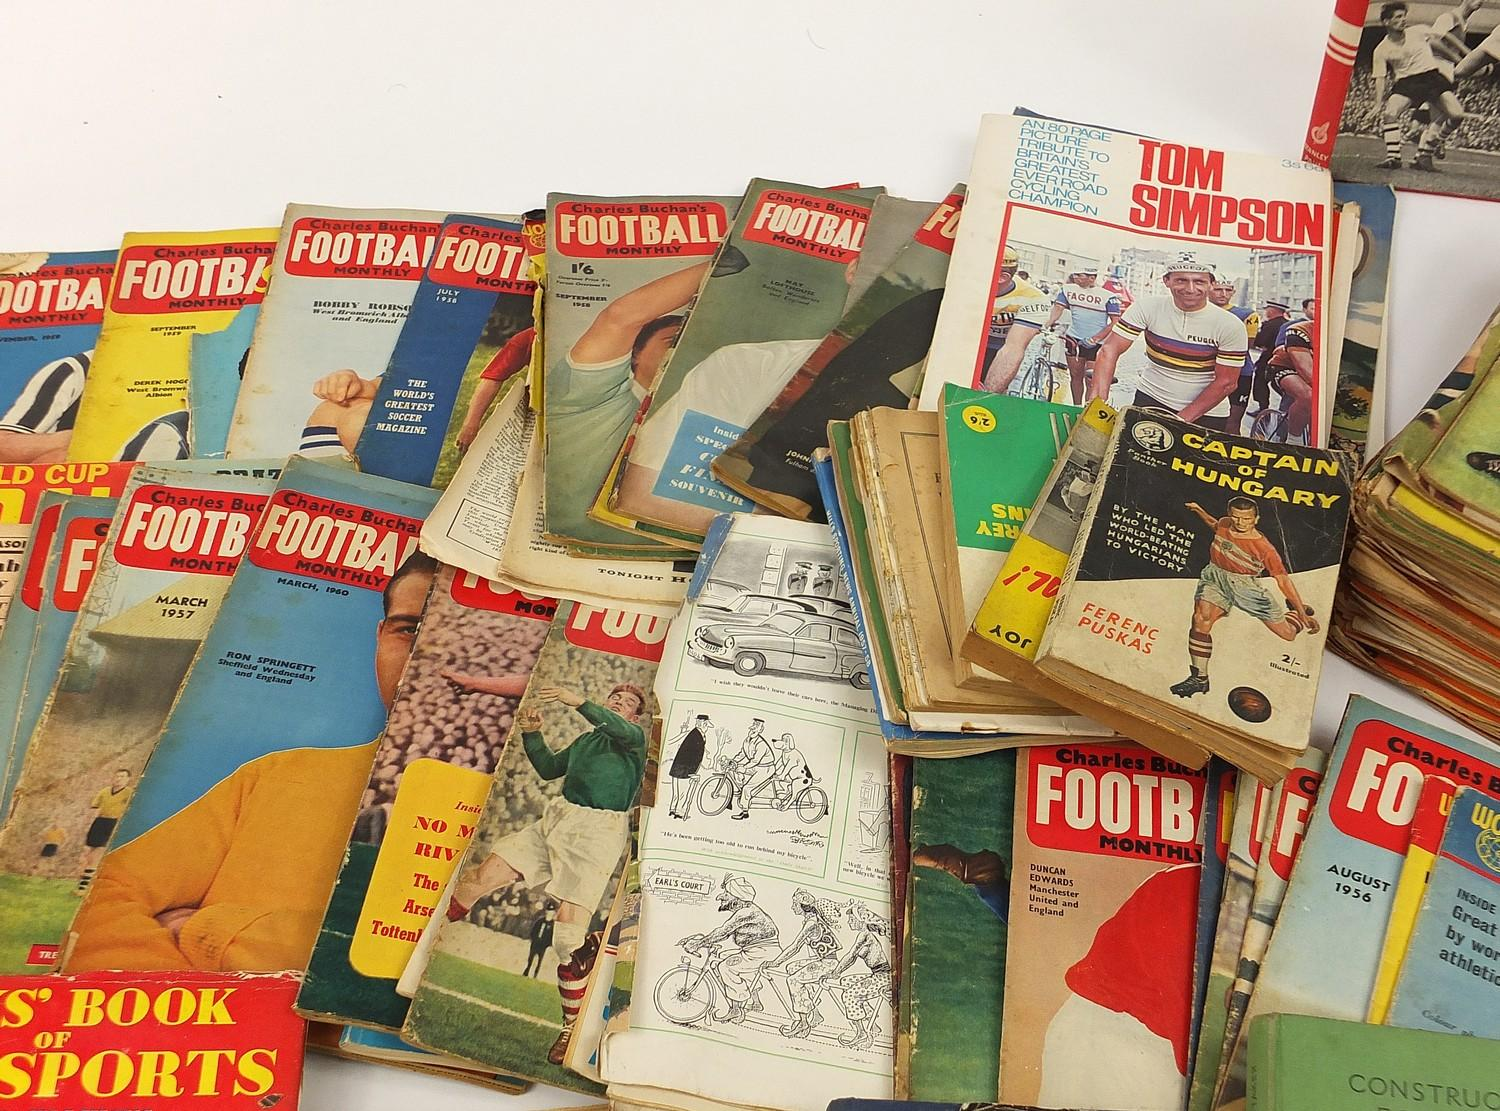 Collection of vintage and later football related books and magazines including The Real Madrid and - Image 3 of 7